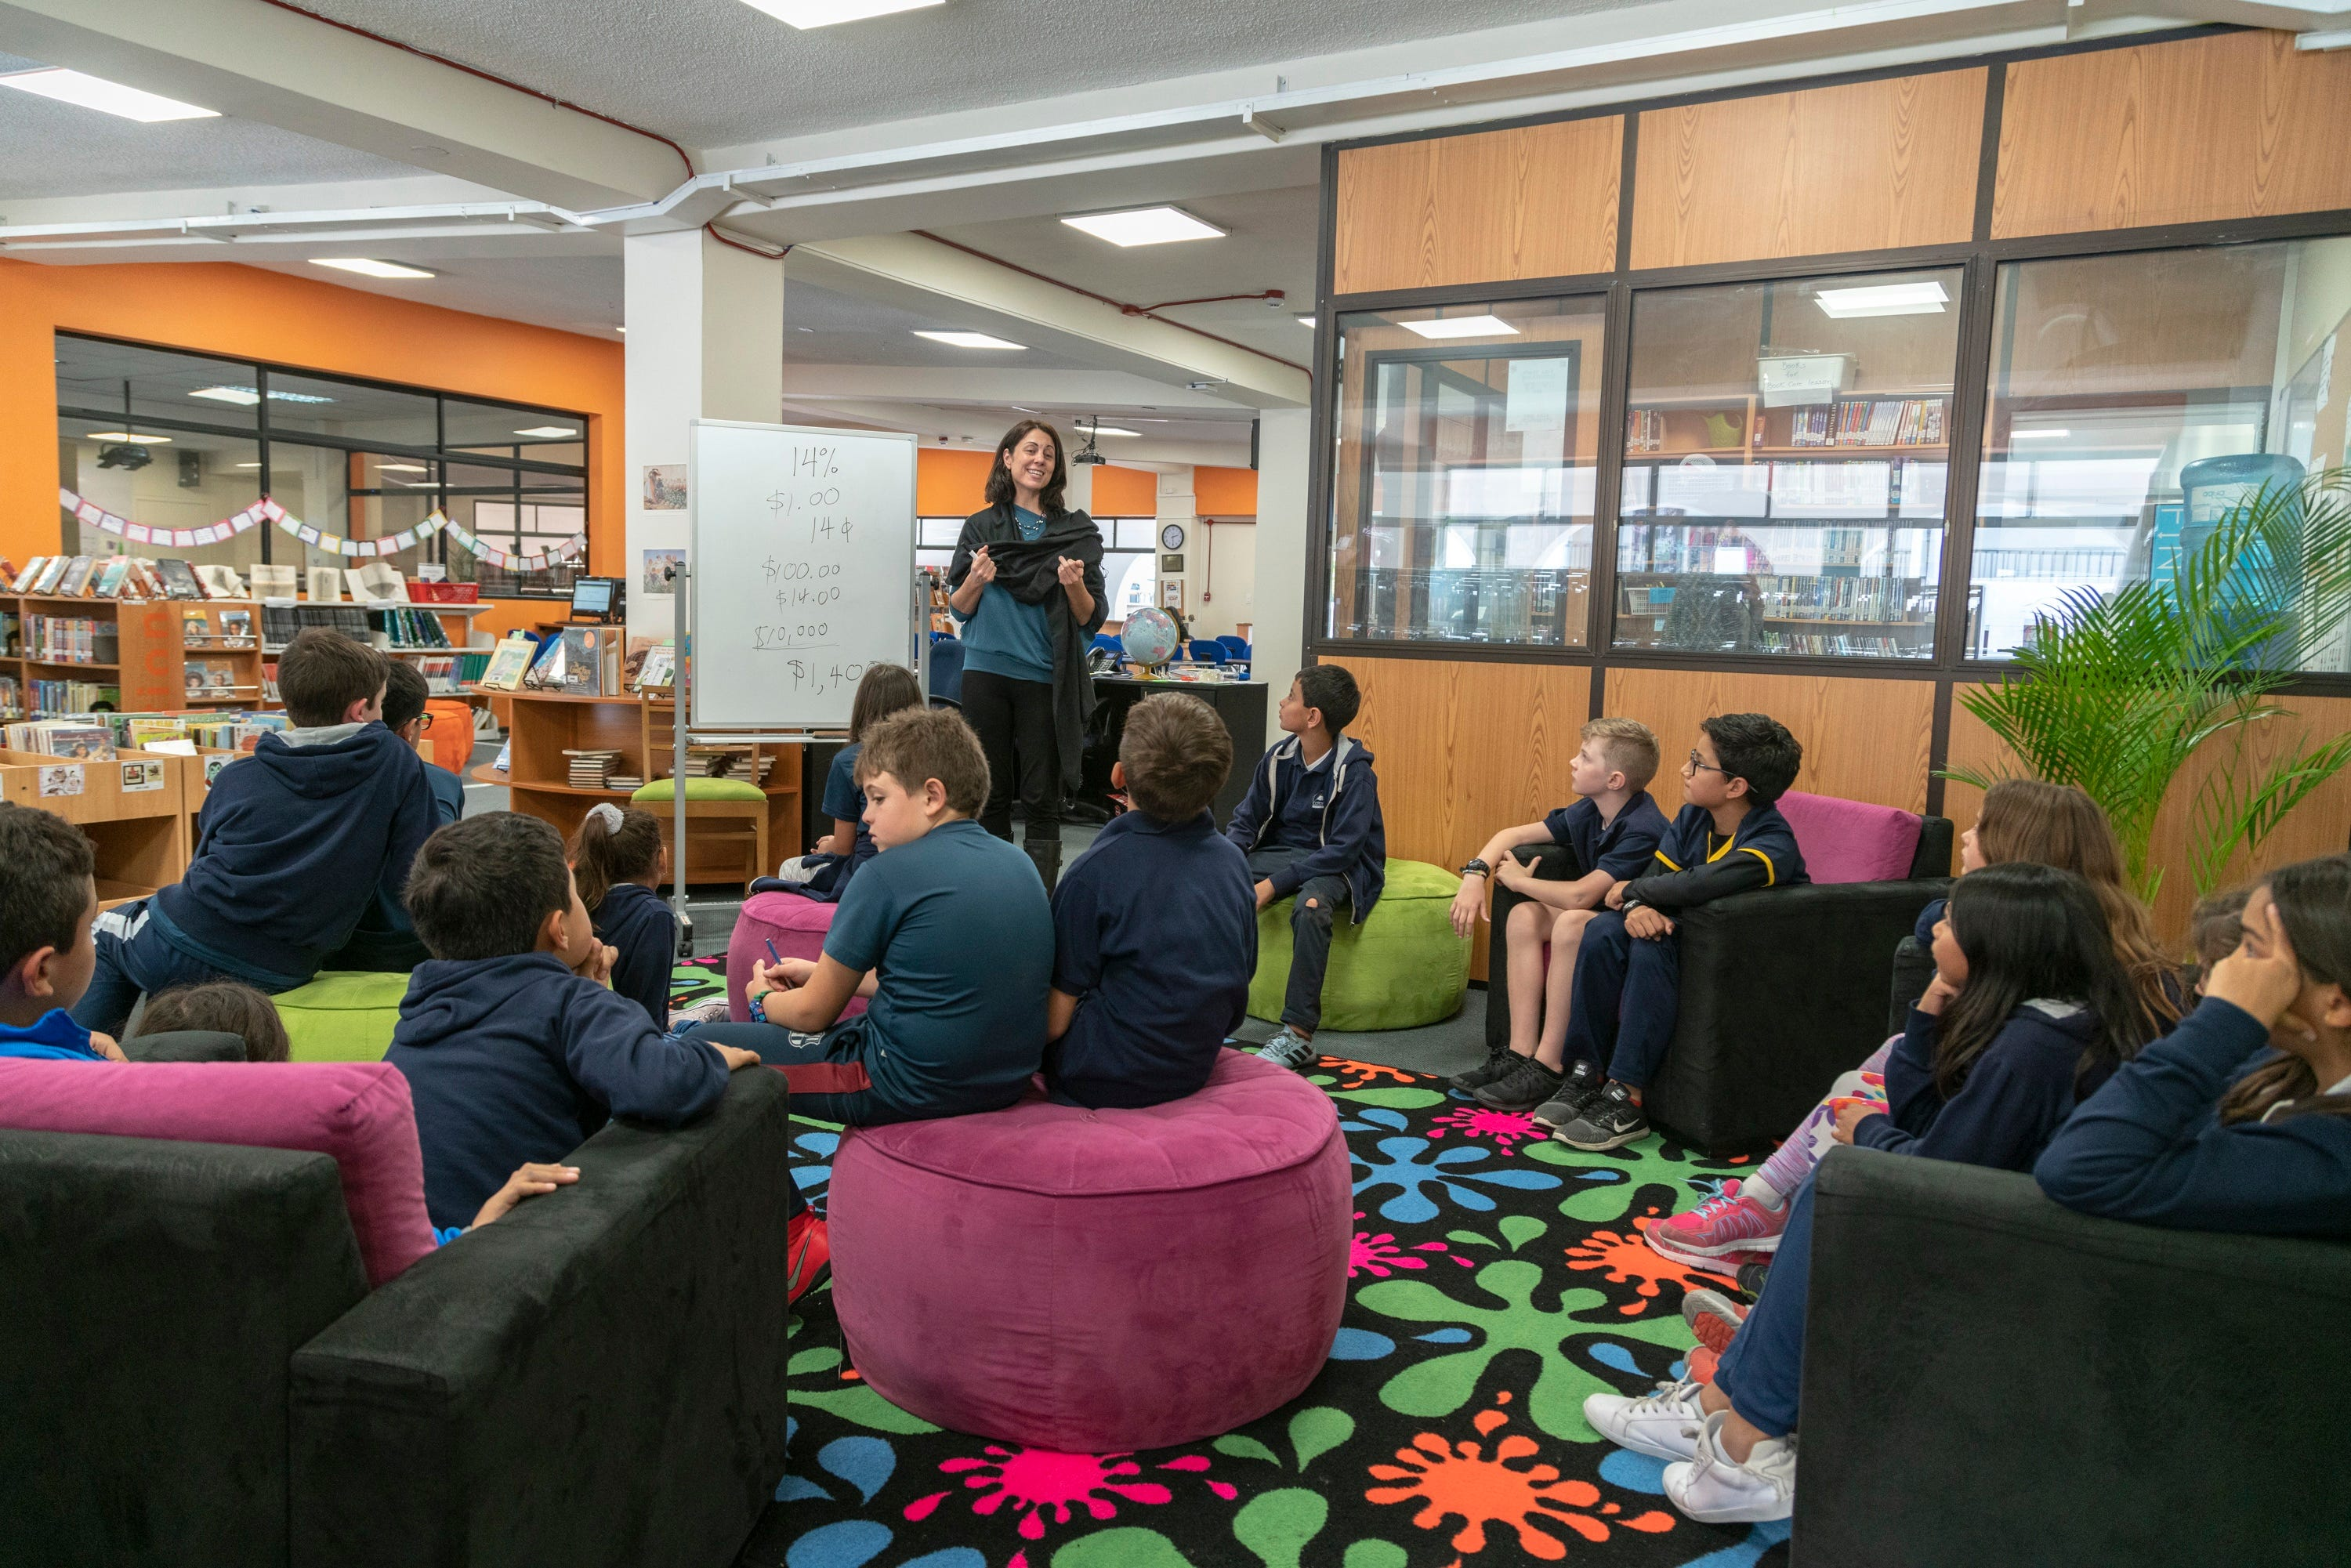 Jill Egan, a librarian, works with a group of students Academia Cotopaxi.